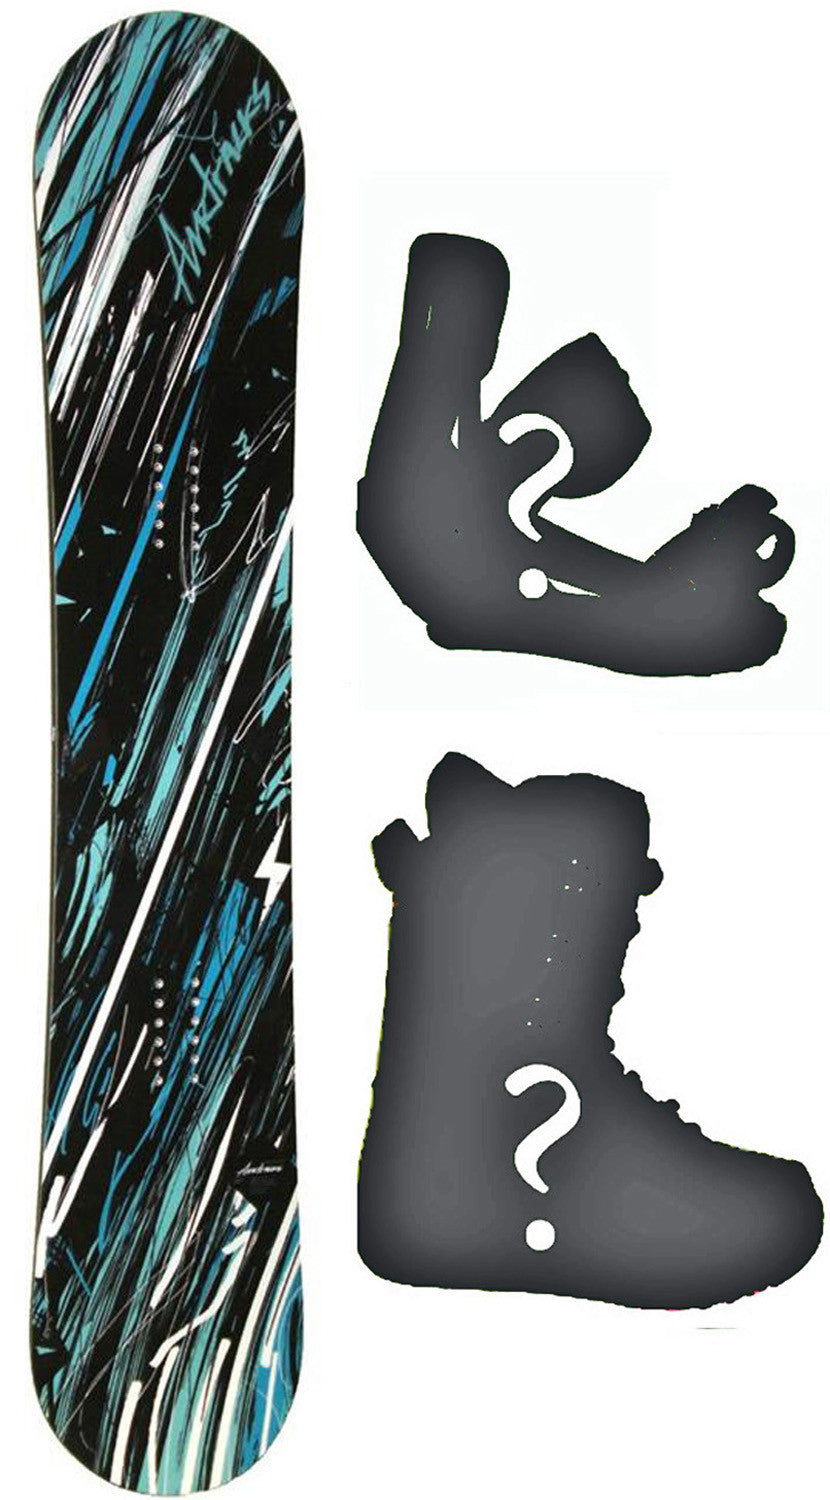 155cm Wide Airtracks Wisdom Camber Snowboard, Build a Package with Boots and Bindings